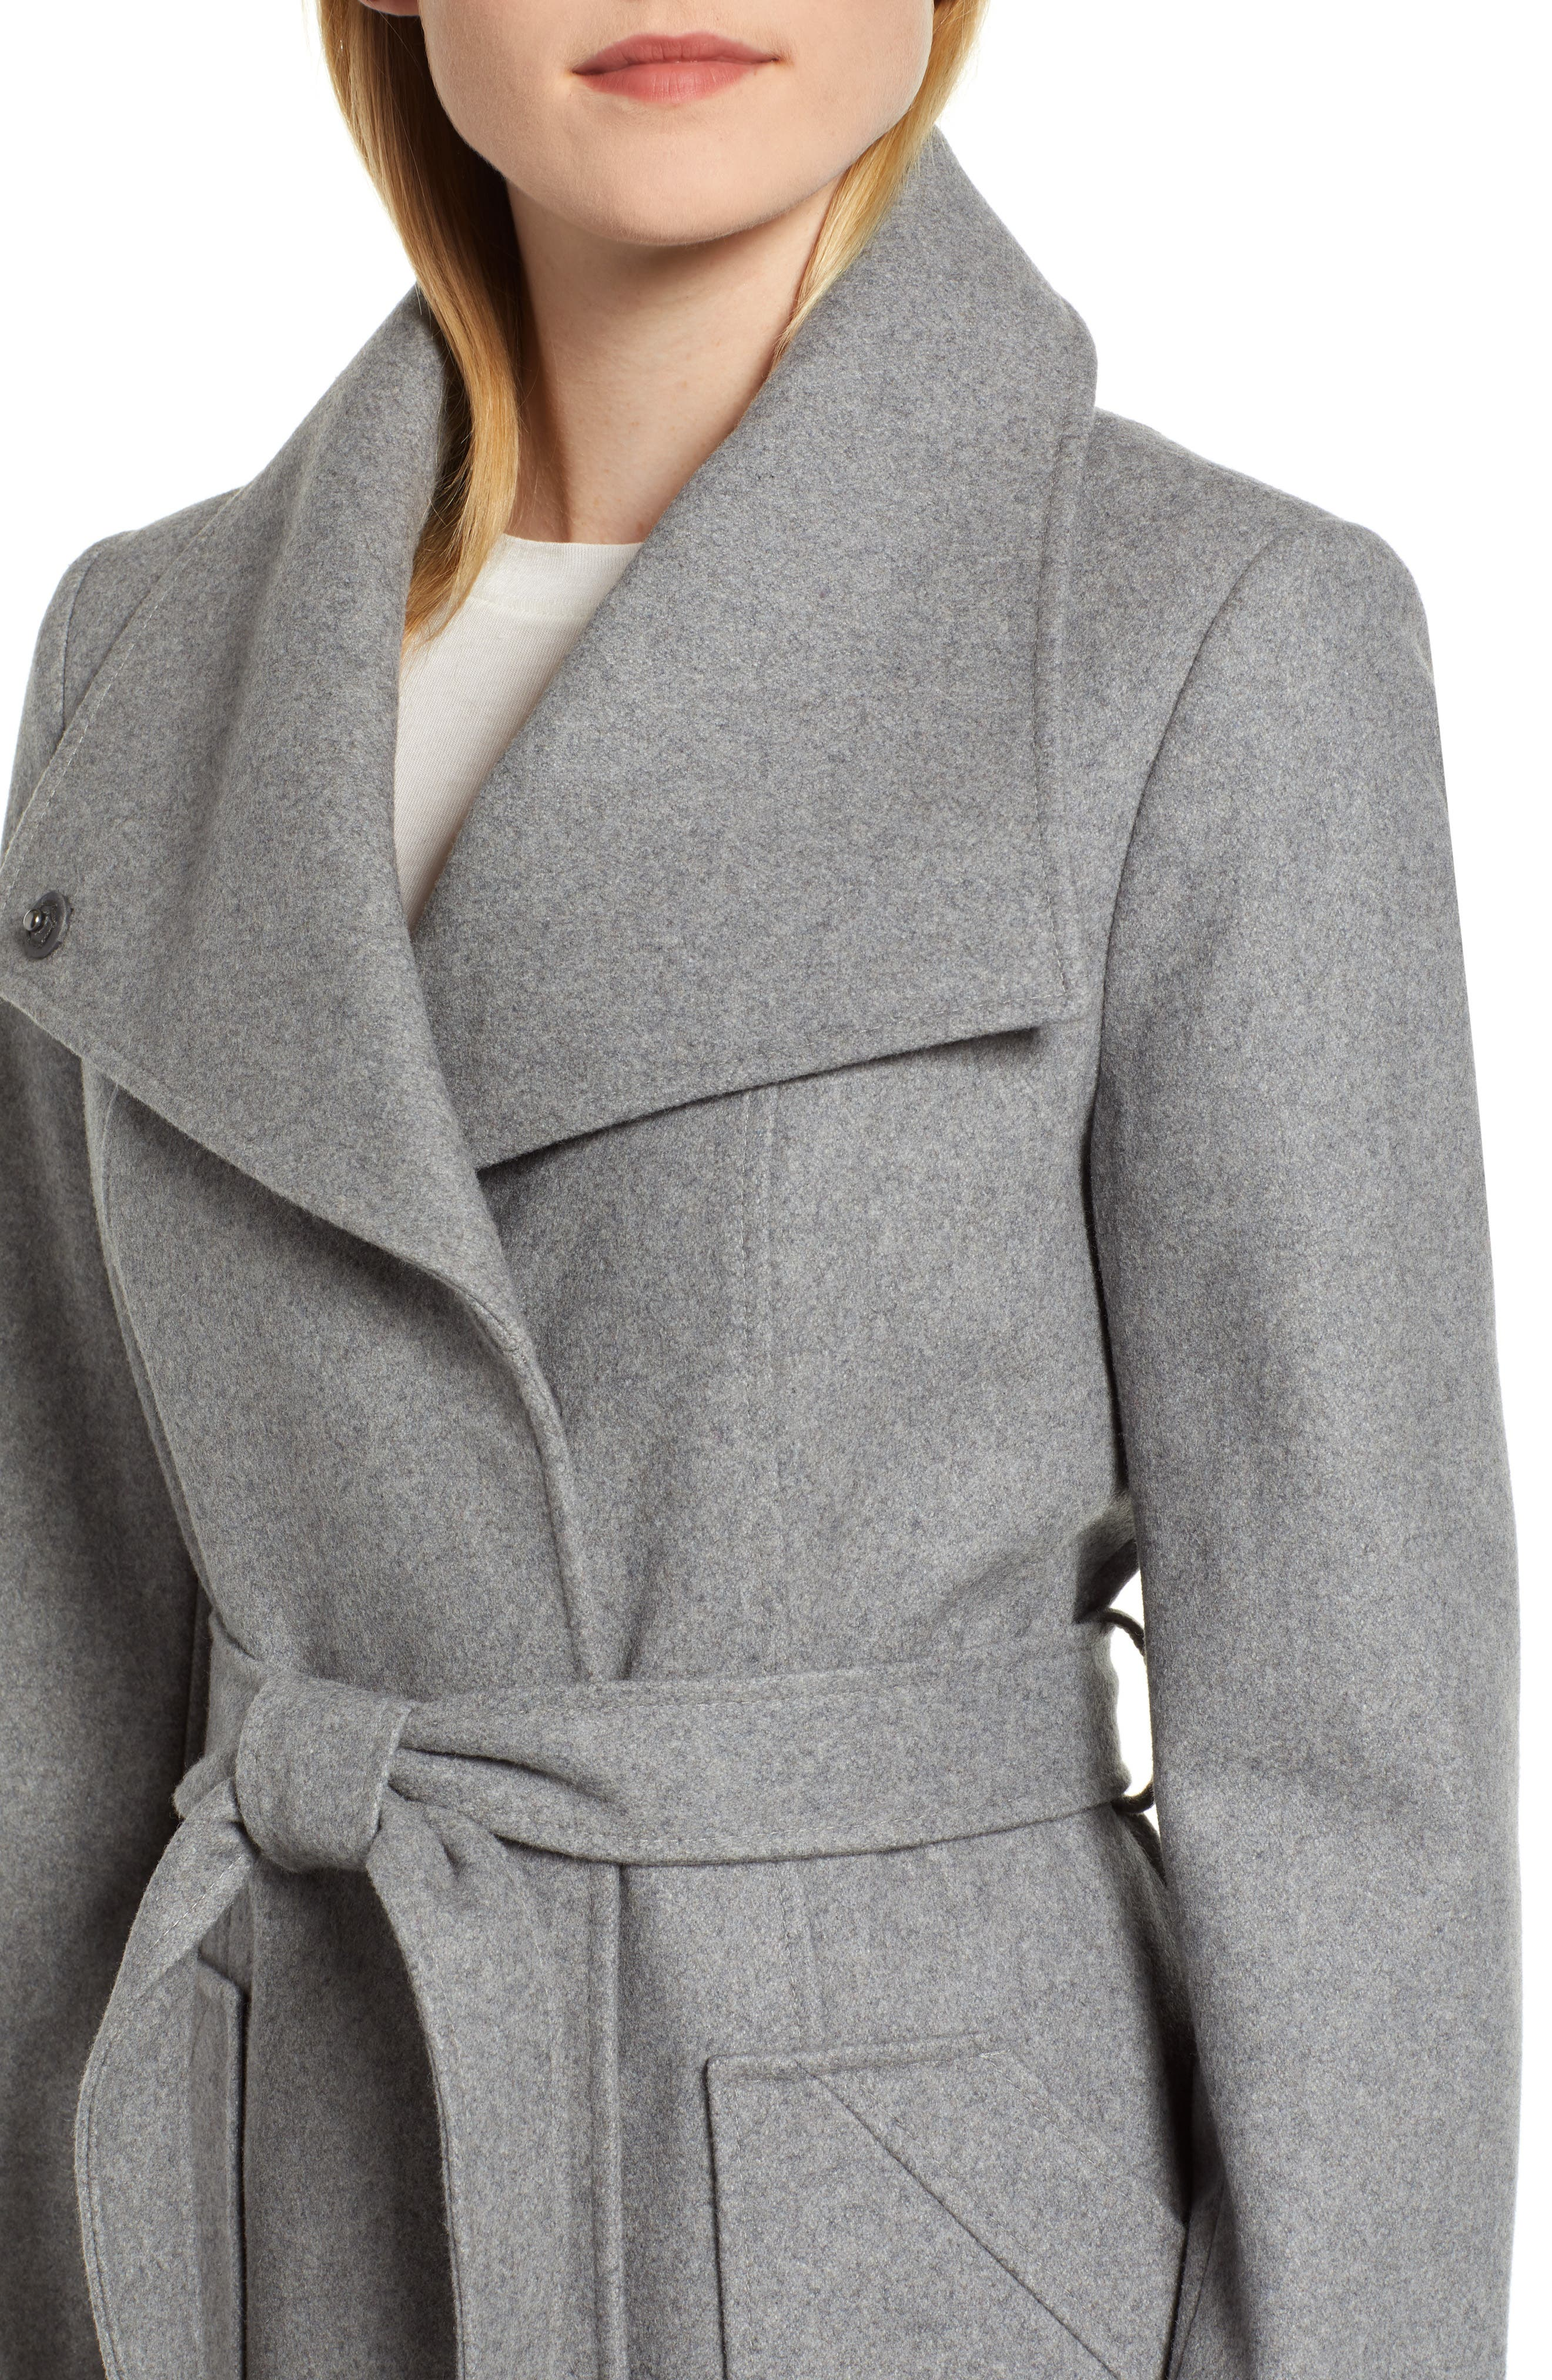 Belted Wool Blend Coat,                             Alternate thumbnail 4, color,                             GREY